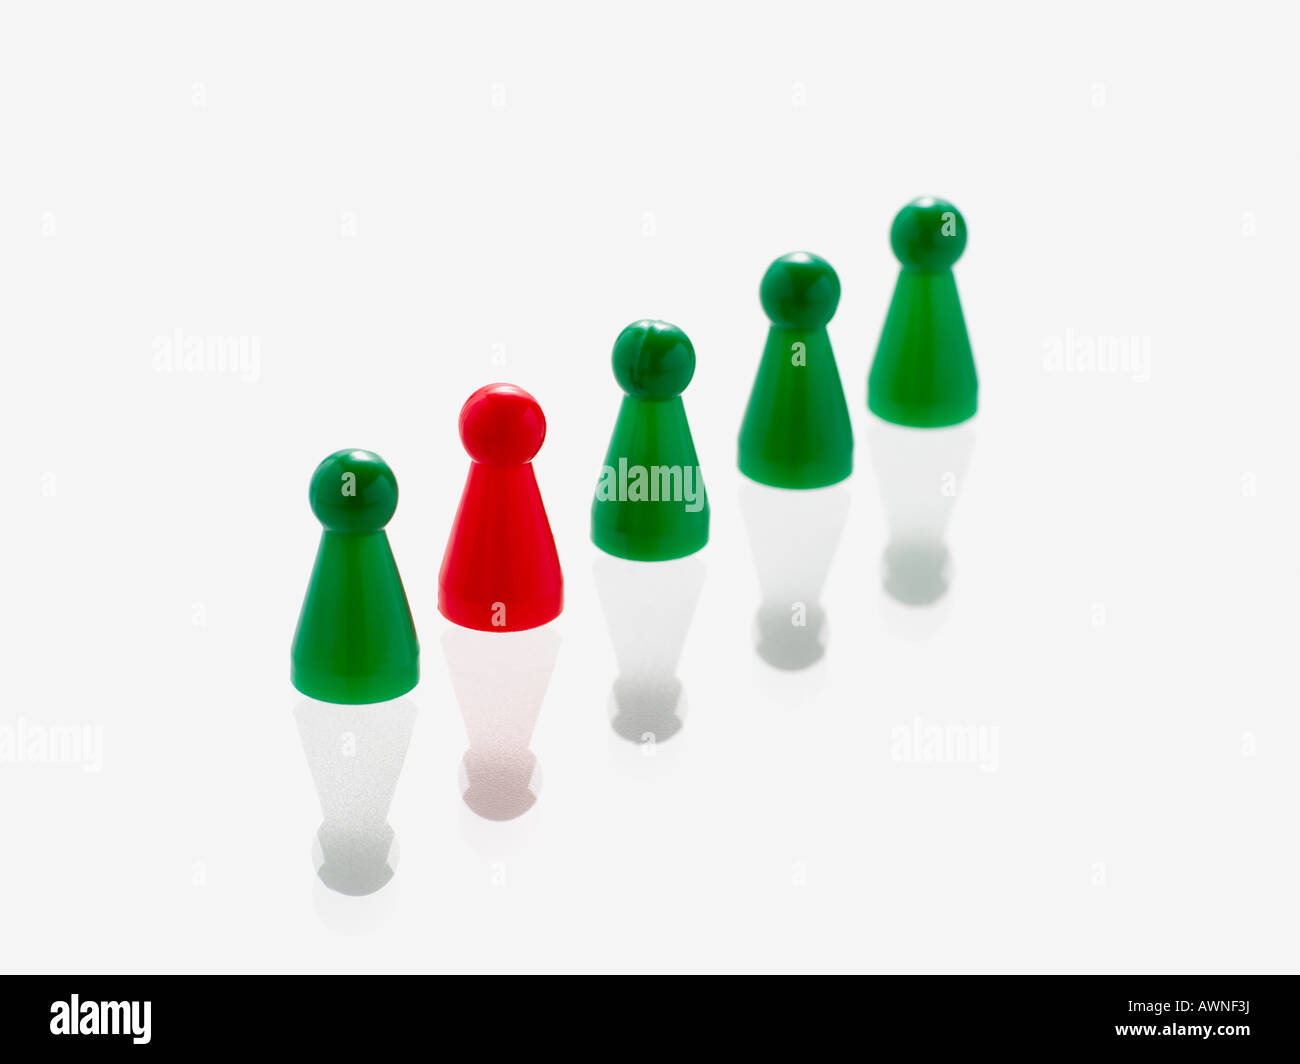 Game counters in a row - Stock Image